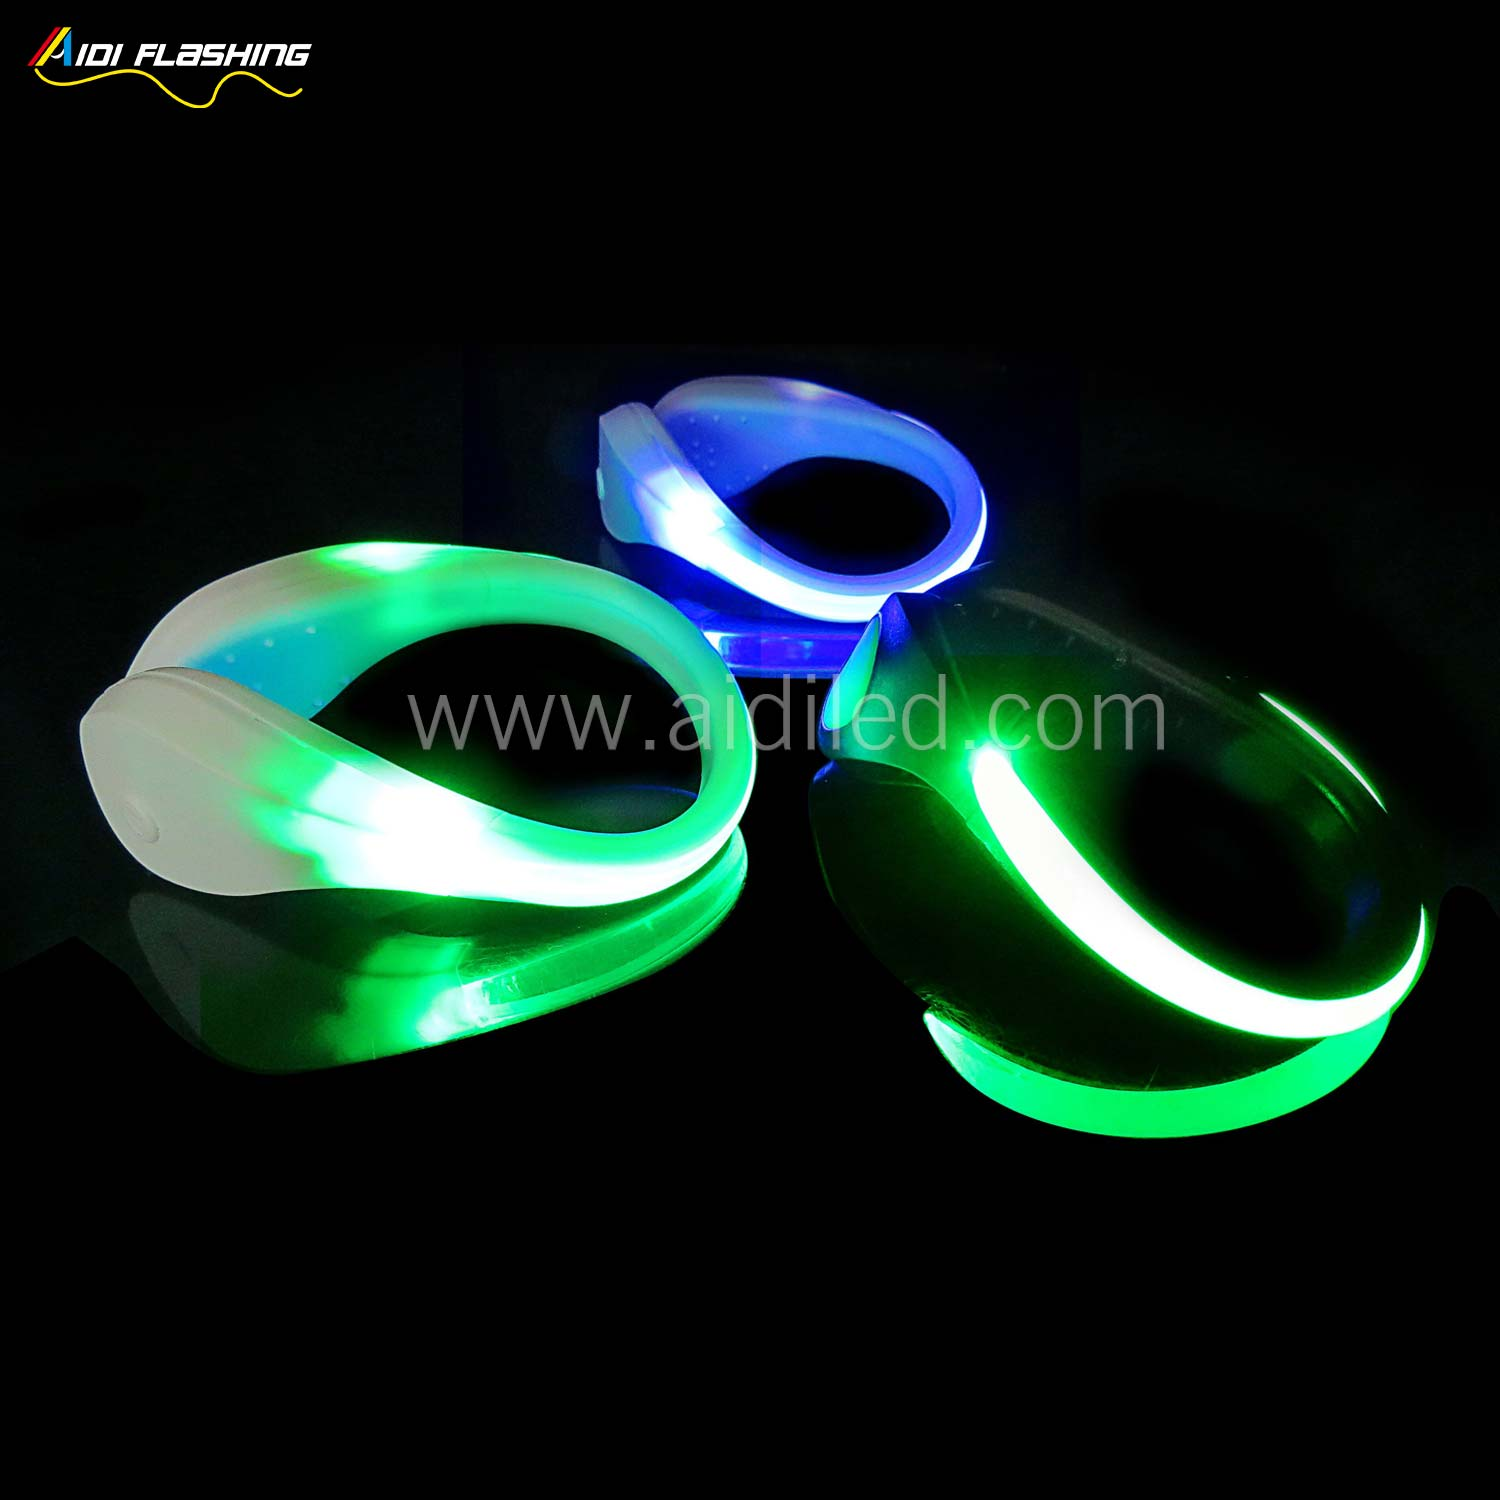 Led light up shoe clips (for children) AIDI-S2